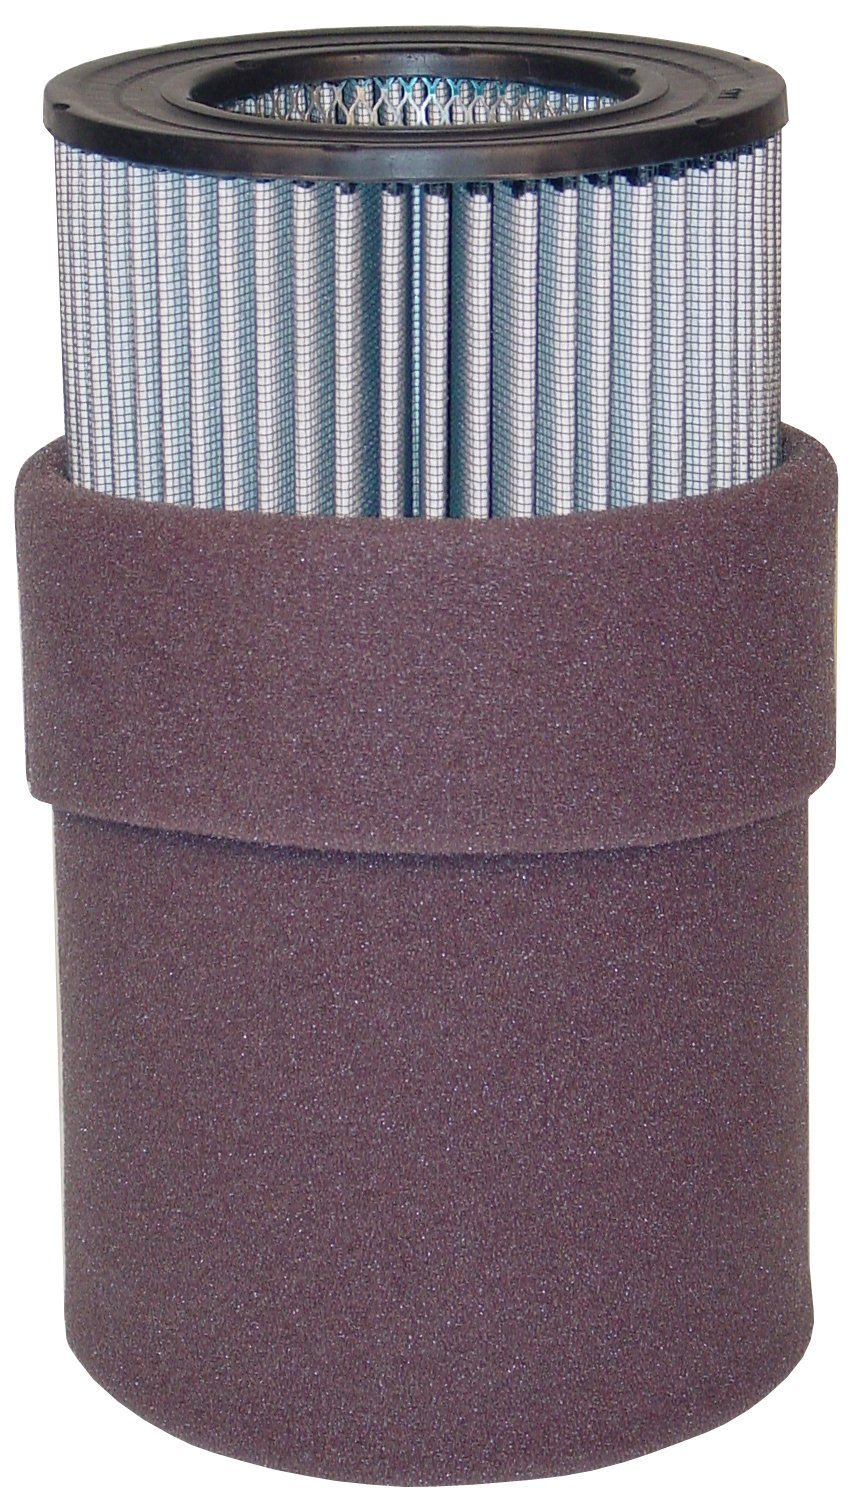 Solberg 235P Polyester Filter Cartridge, Blower, Vaccum Pump, 9-5/8'' Height, 4-3/4'' Inner Diameter, 7-7/8'' Outer Diameter, 570 SCFM, Made in the USA by Solberg